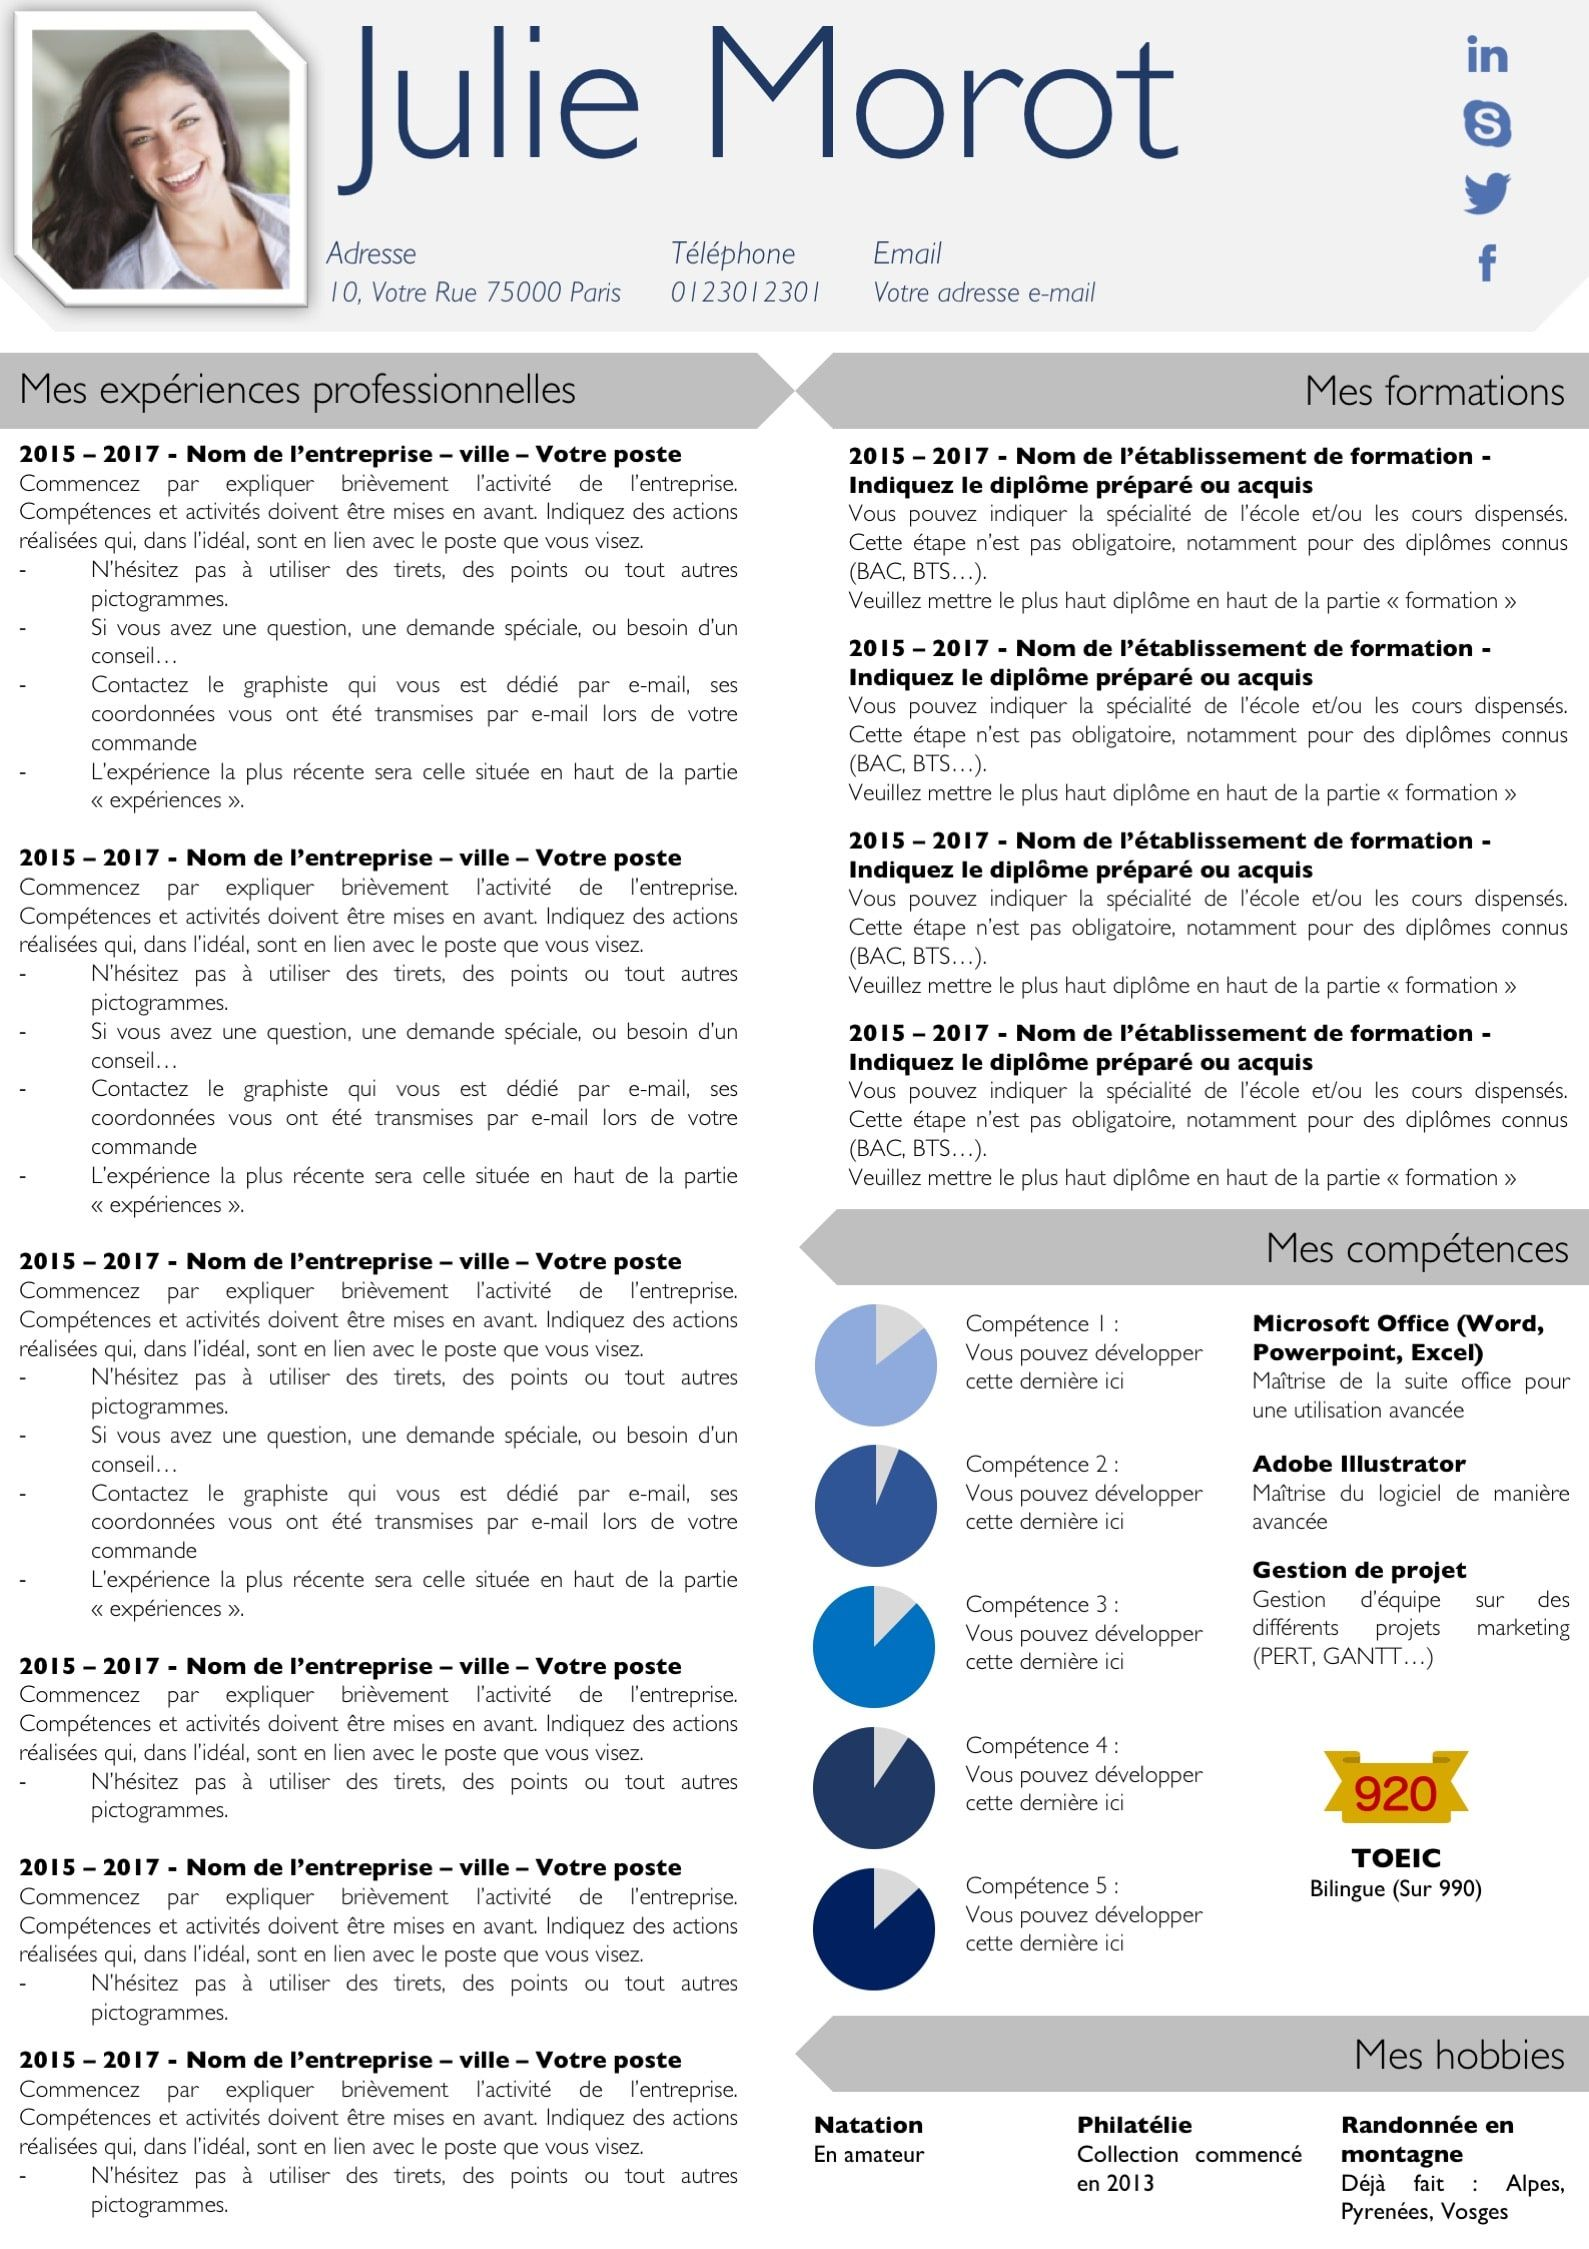 Modeles Cv Et Lettre De Motivation Gris Modifiable Pour 6 99 Lettre De Motivation Modele De Cv Design Lettre De Motivation Secretaire